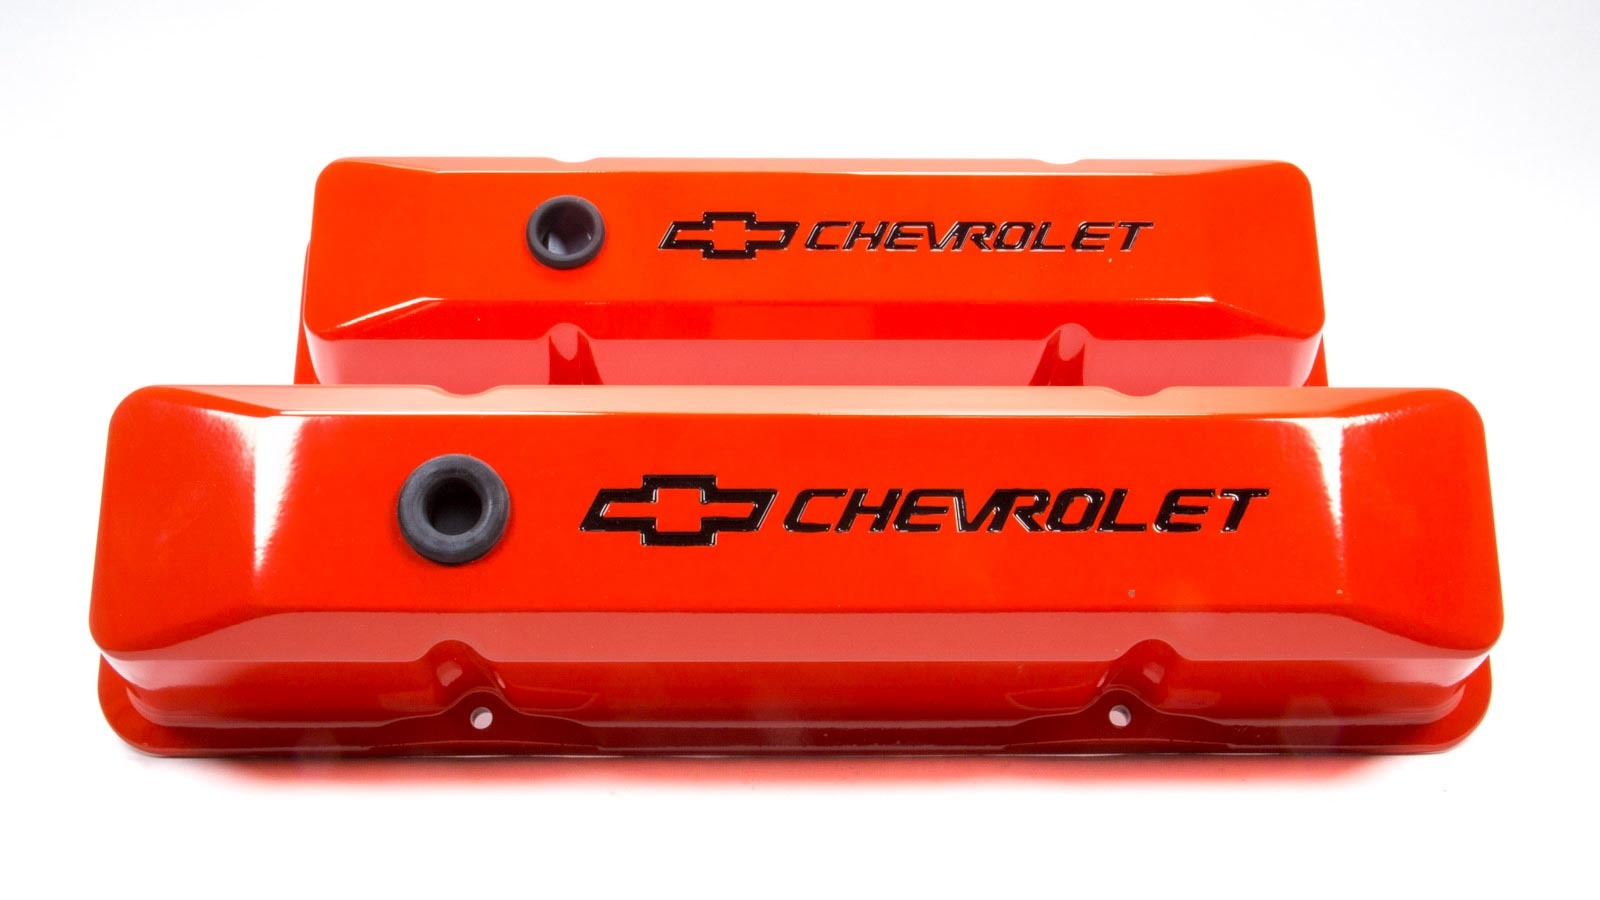 Proform 141-118 Valve Cover, Die-Cast, Tall, Baffled, Breather Hole, Recessed Chevrolet Bowtie Logo, Aluminum, Orange Powder Coat, Small Block Chevy, Pair